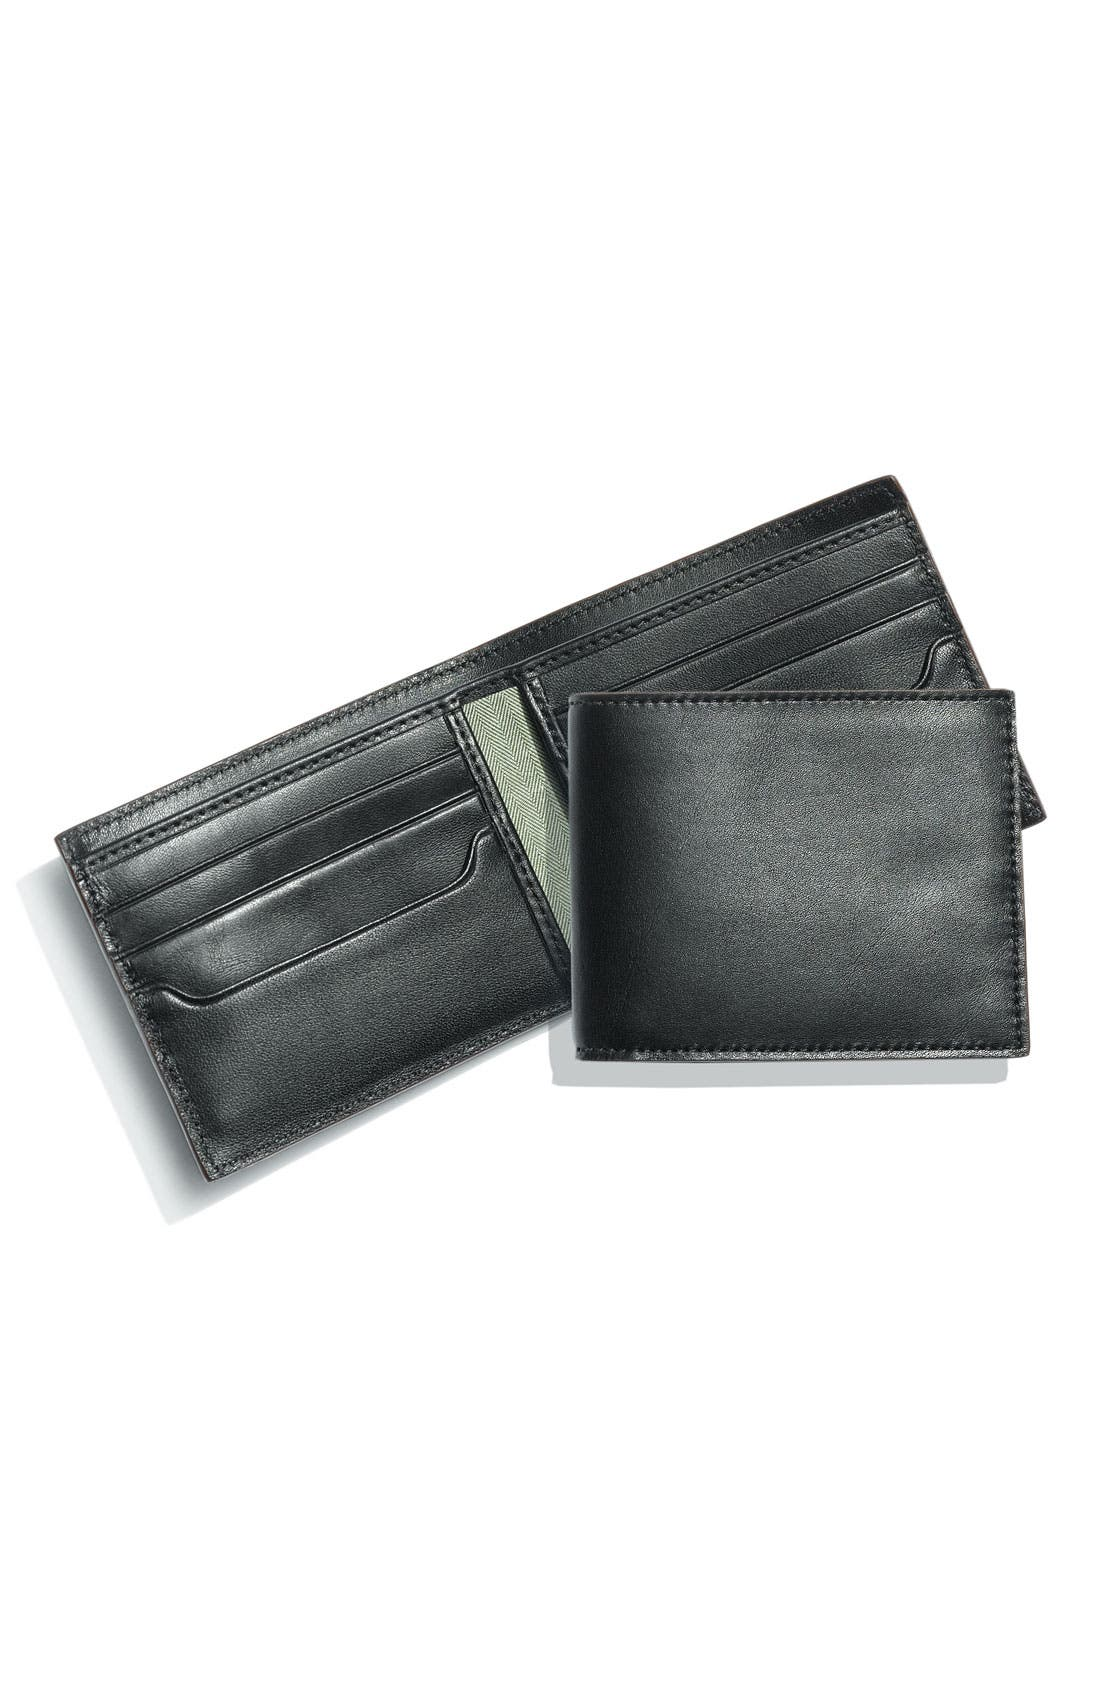 Main Image - Jack Spade Leather Billfold